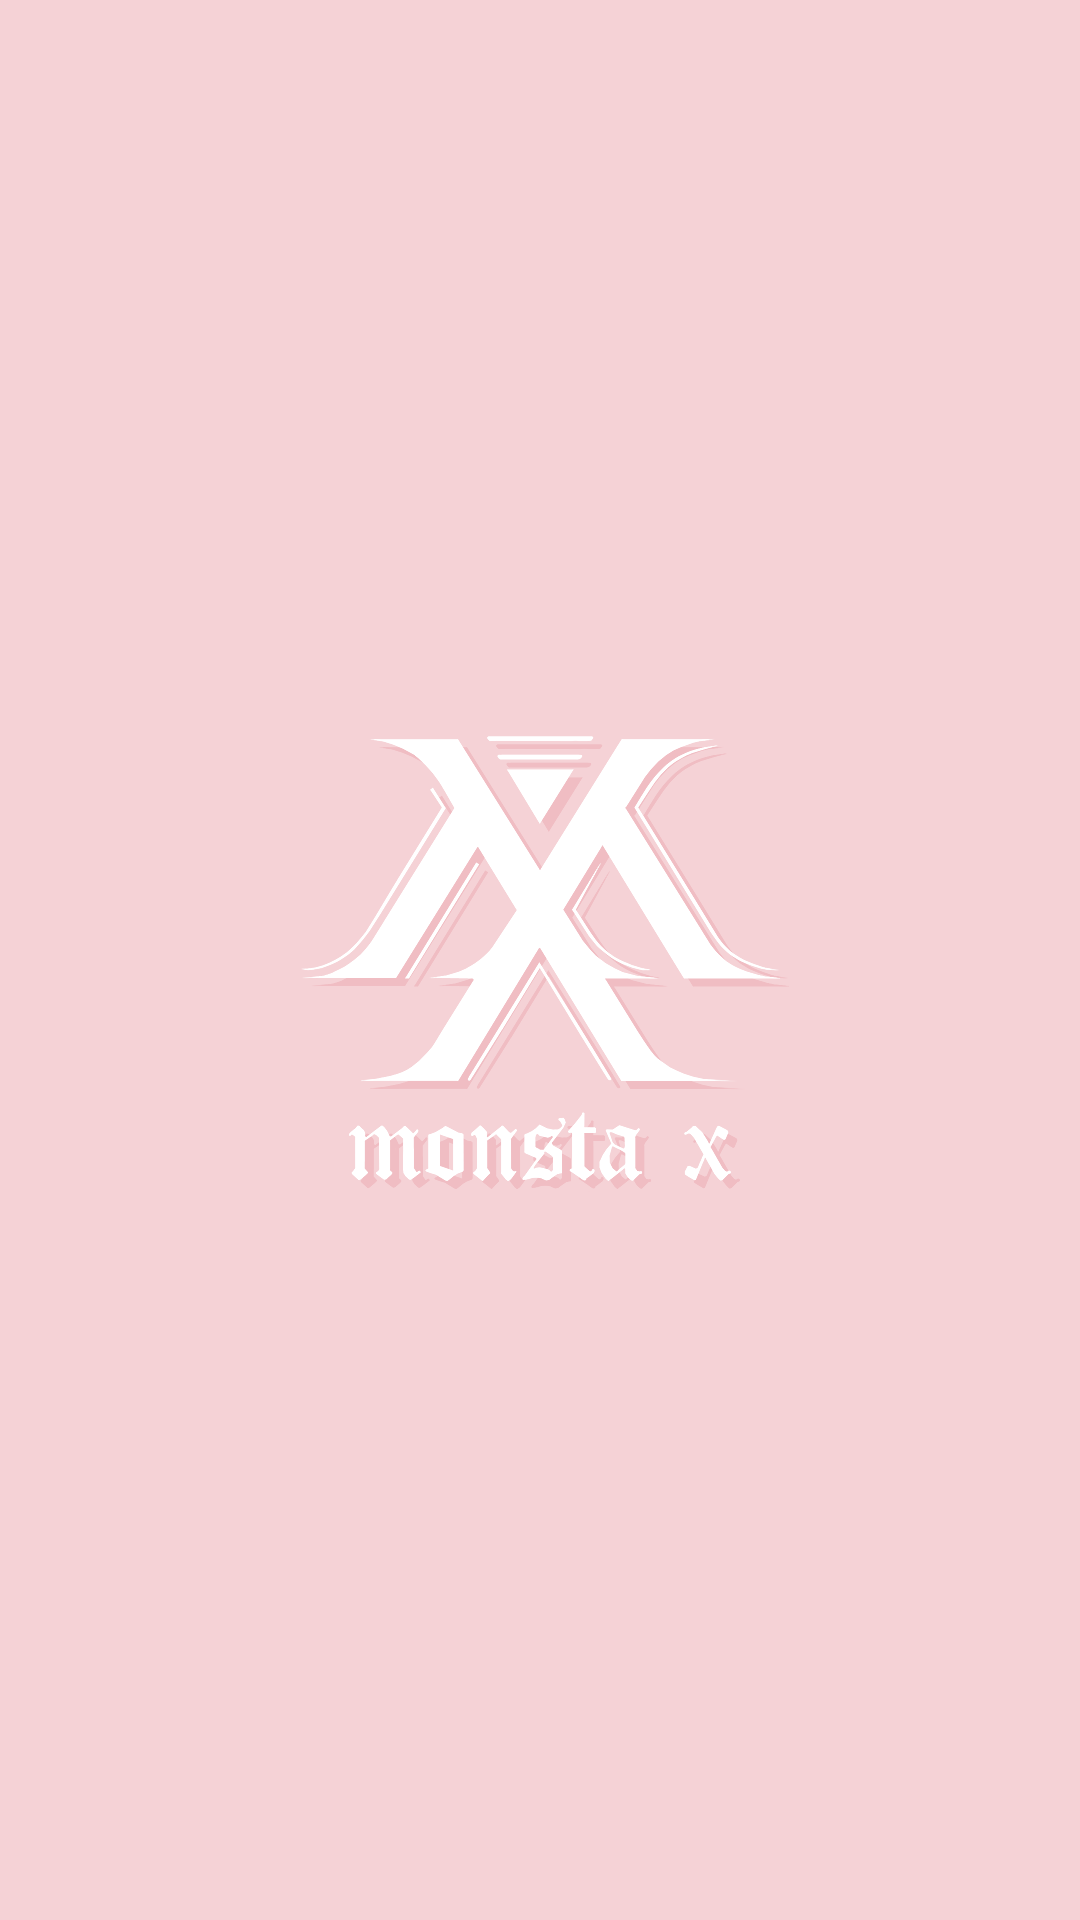 Pin By Nani Prater On Monsta X Monsta X Wallpaper Kpop Wallpaper